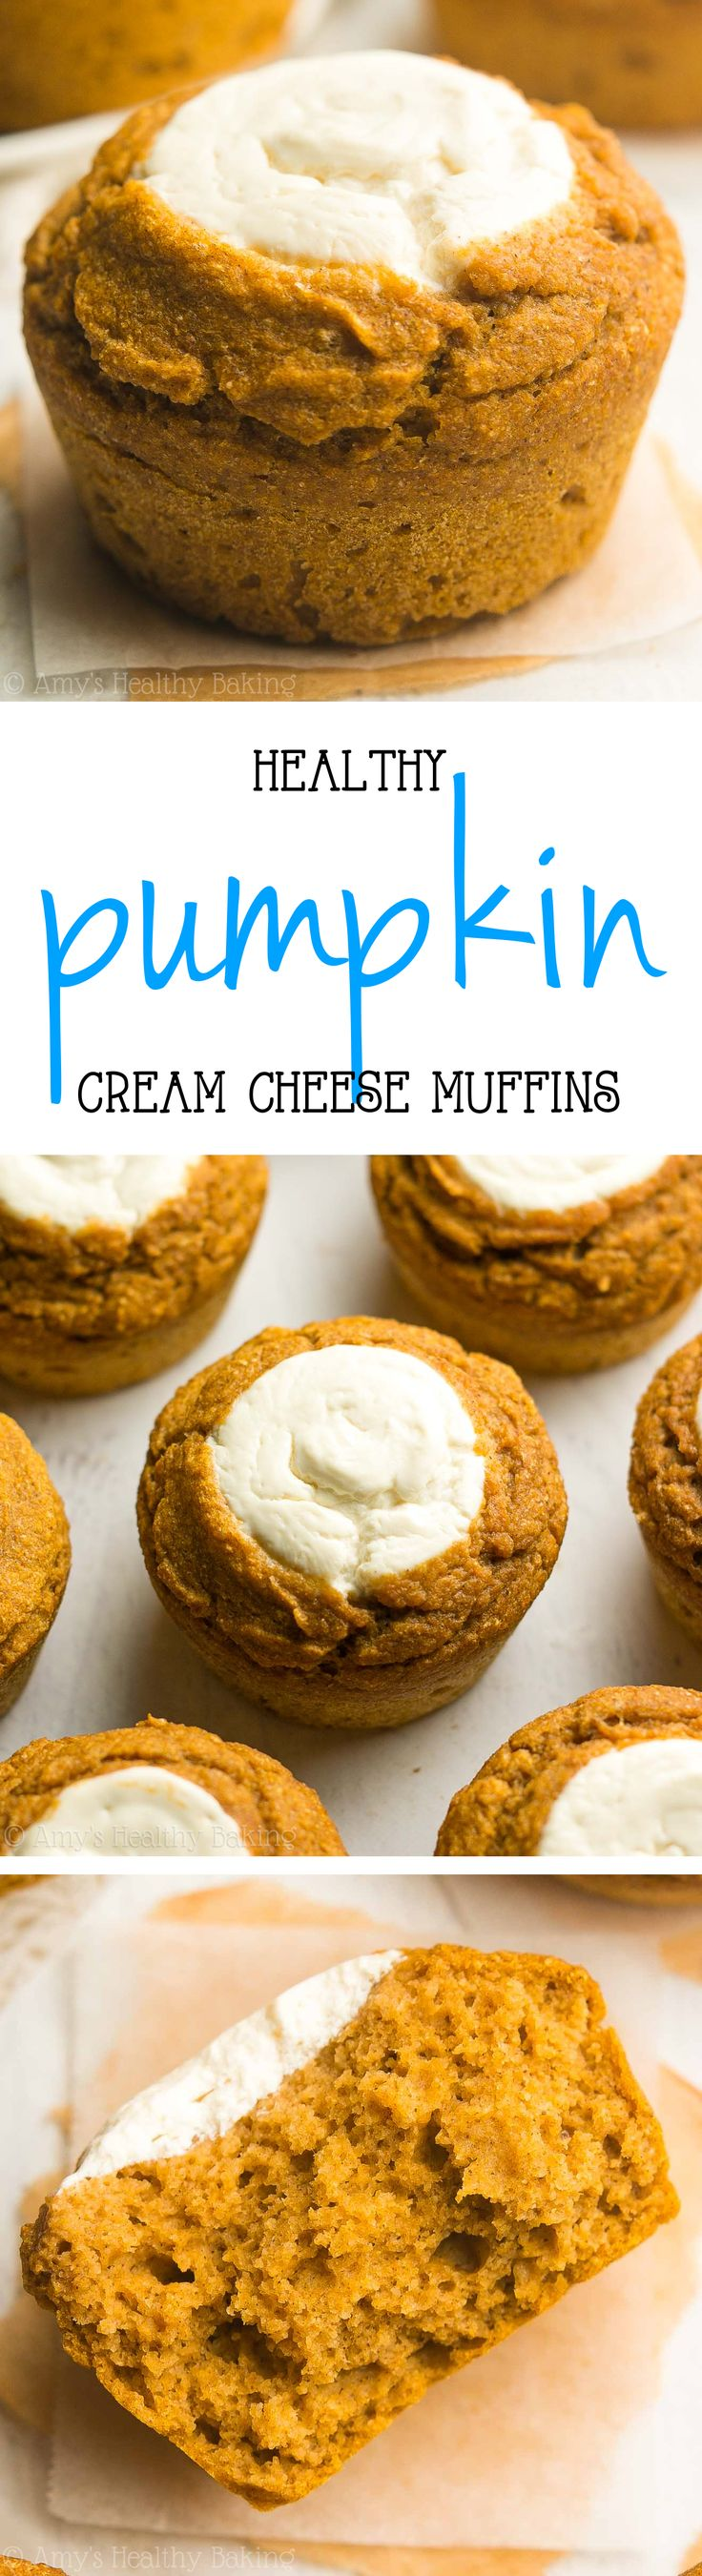 Healthy Pumpkin Cream Cheese Muffins -- a skinny Starbucks copycat recipe! Just 123 calories + over 6g of protein!